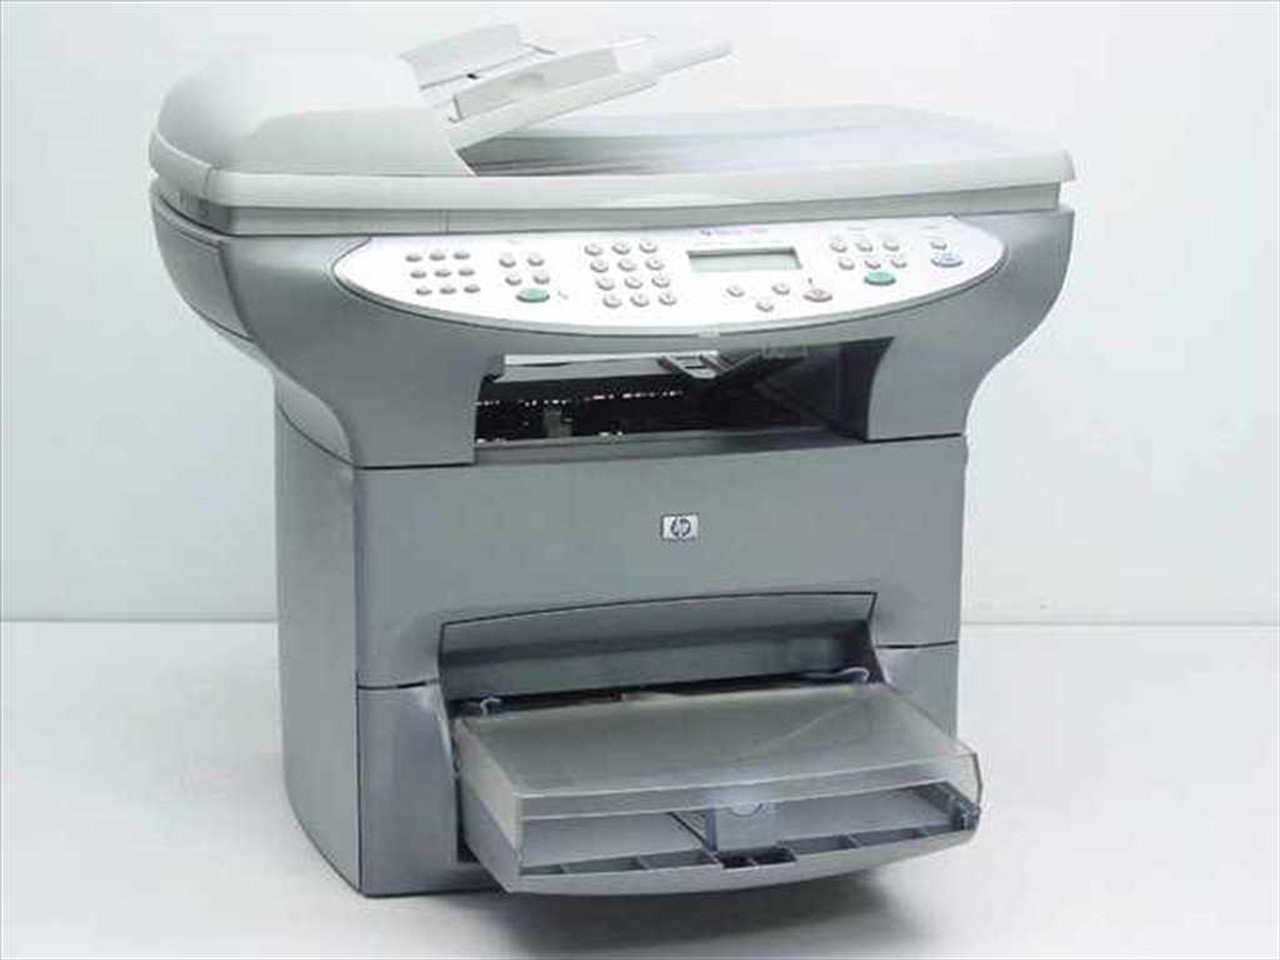 Hp laserjet 3380 windows xp driver download officeseven.